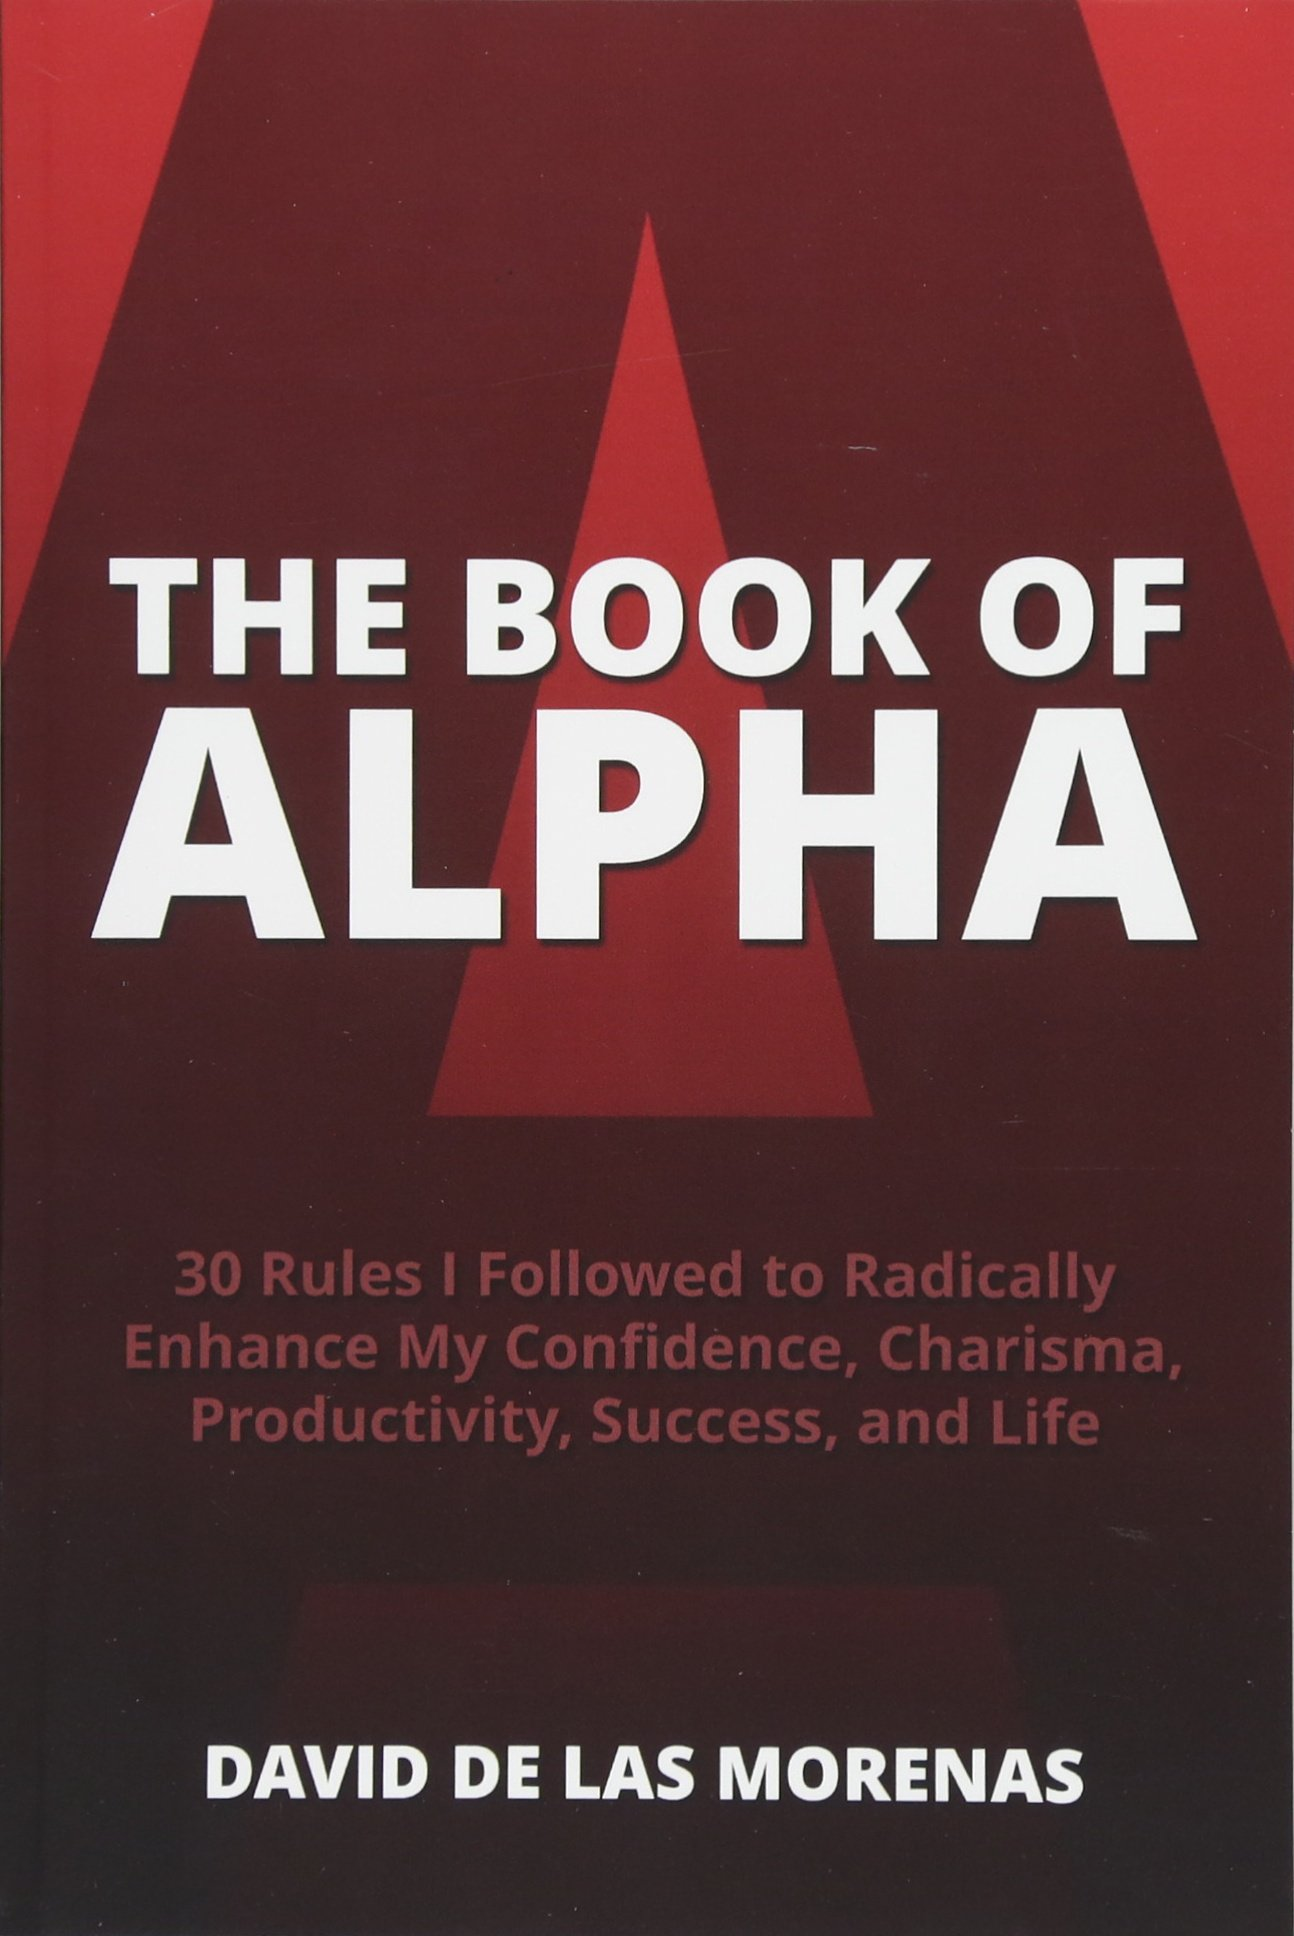 The Book of Alpha 30 Rules I Followed to Radically Enhance My Confidence Charisma Productivity Success and Life Amazon David De Las Morenas